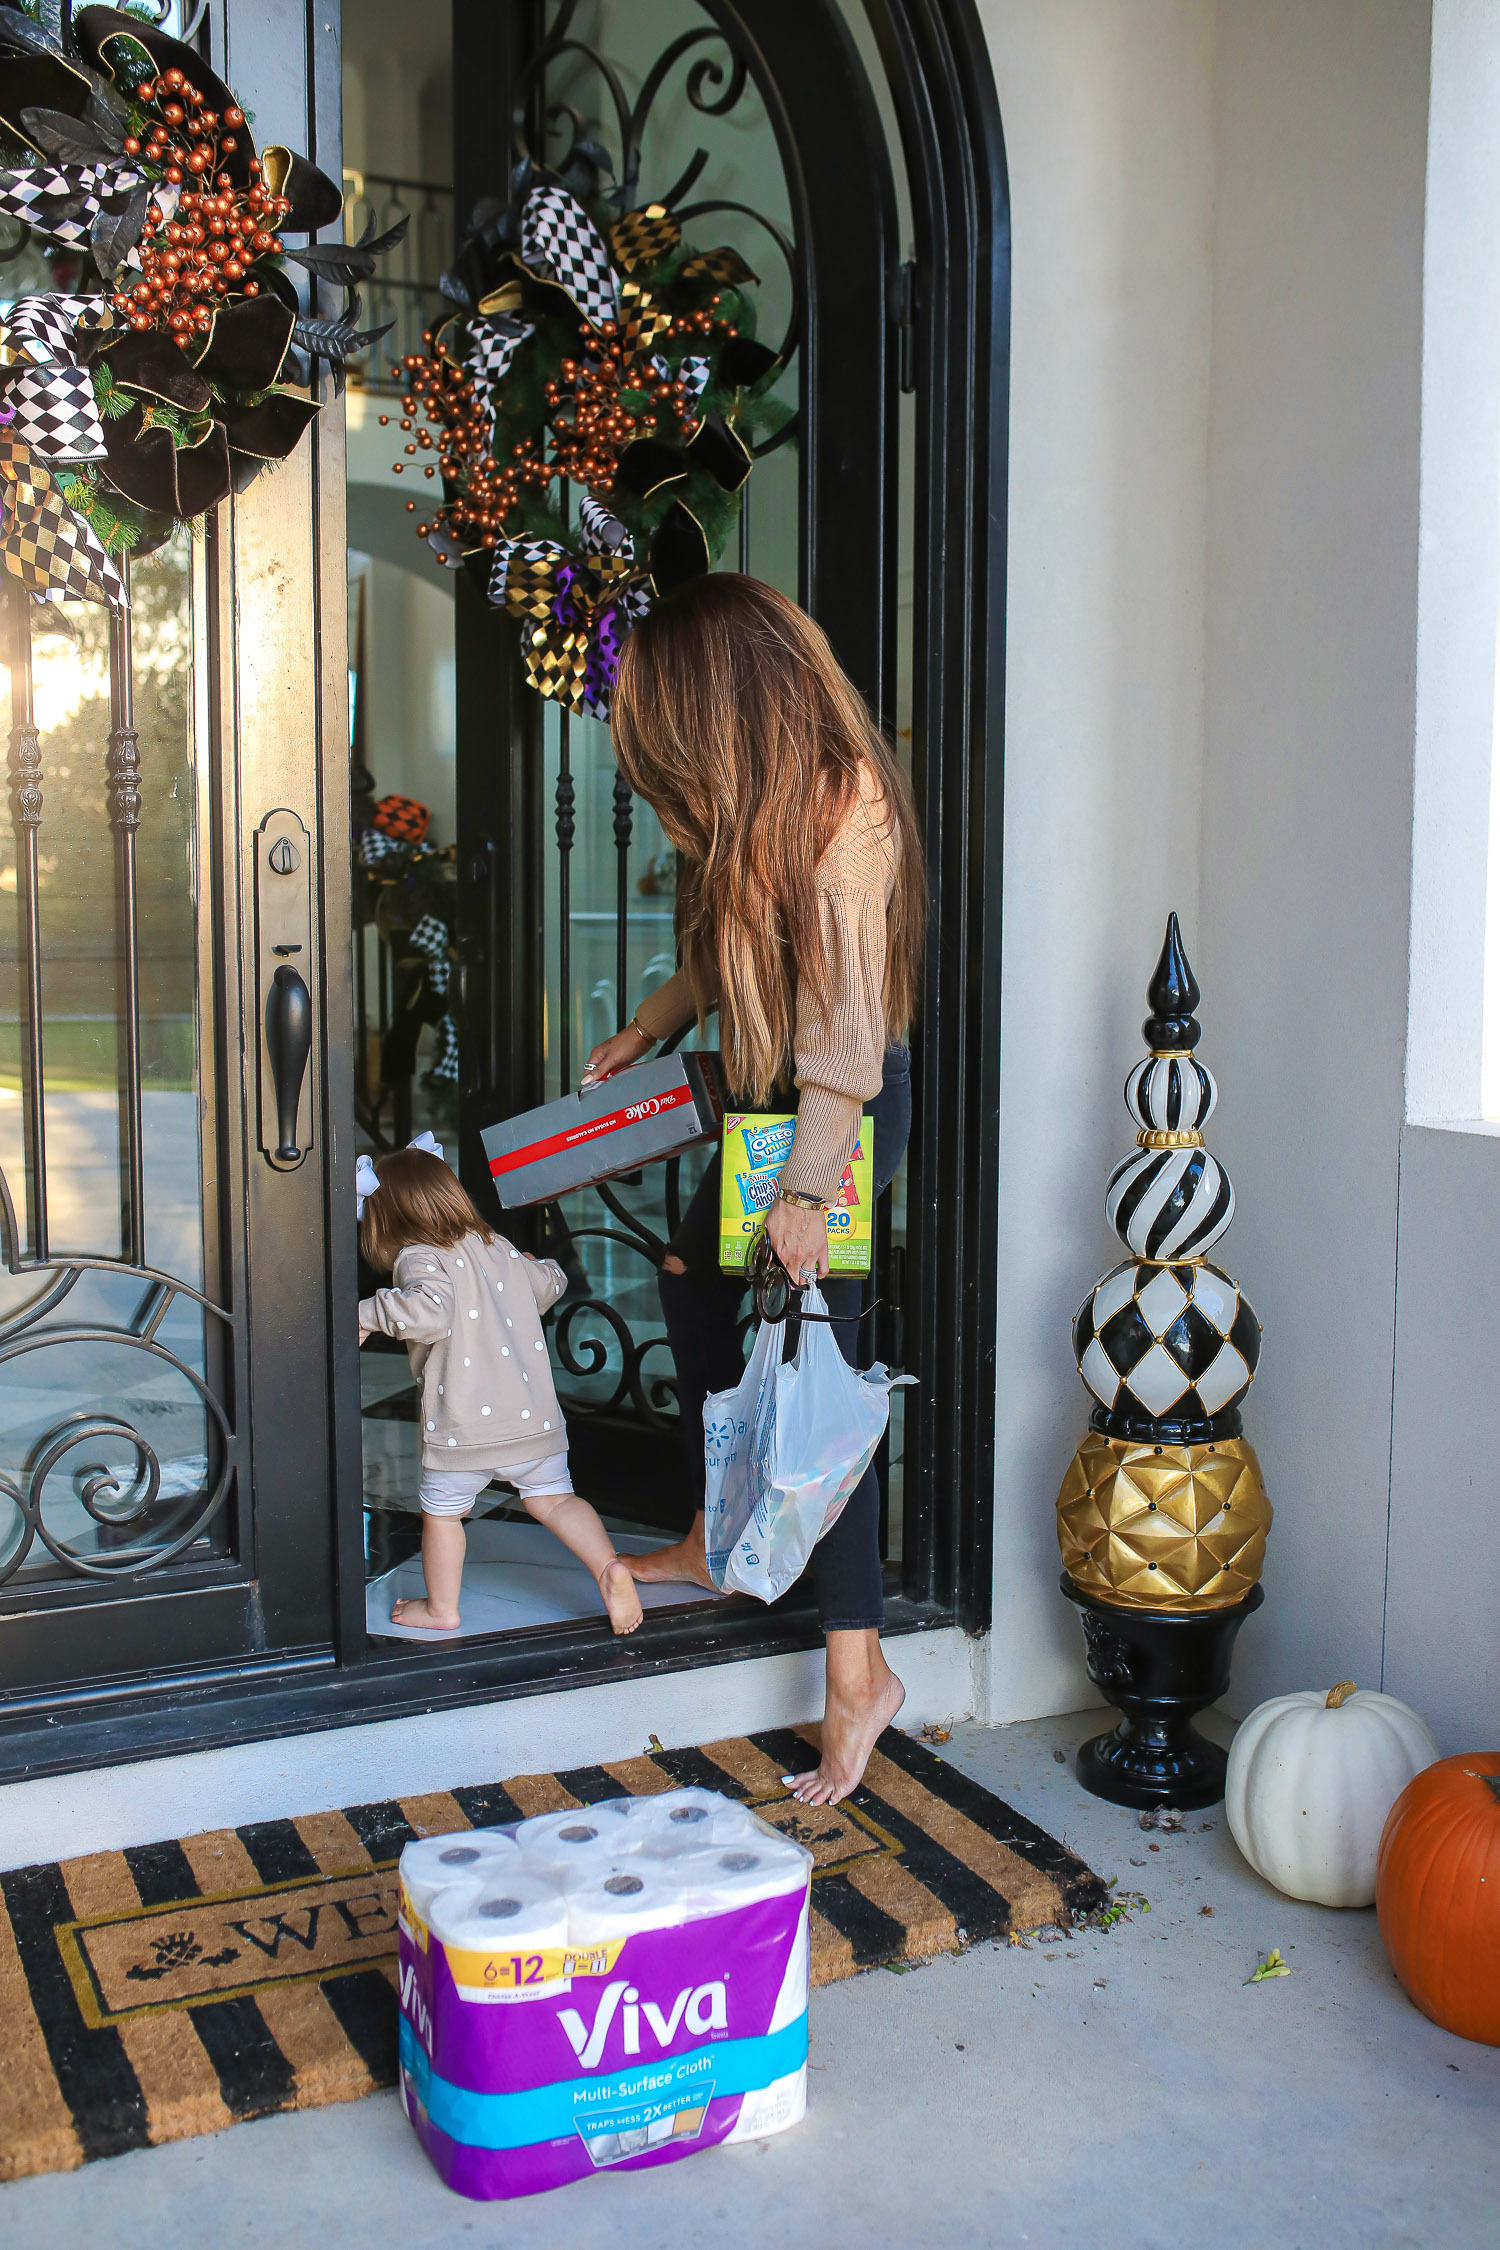 walmart online pickup and delivery review, easiest way to order groceries online, walmart online grocery order, emily ann gemma | Walmart Grocery Pickup Faq by top US lifestyle blog, The Sweetest Thing: image of Emily Gemma and her daughter Sophie standing on their front porch next to a package of VIva toilet paper and a case of Diet Coke.